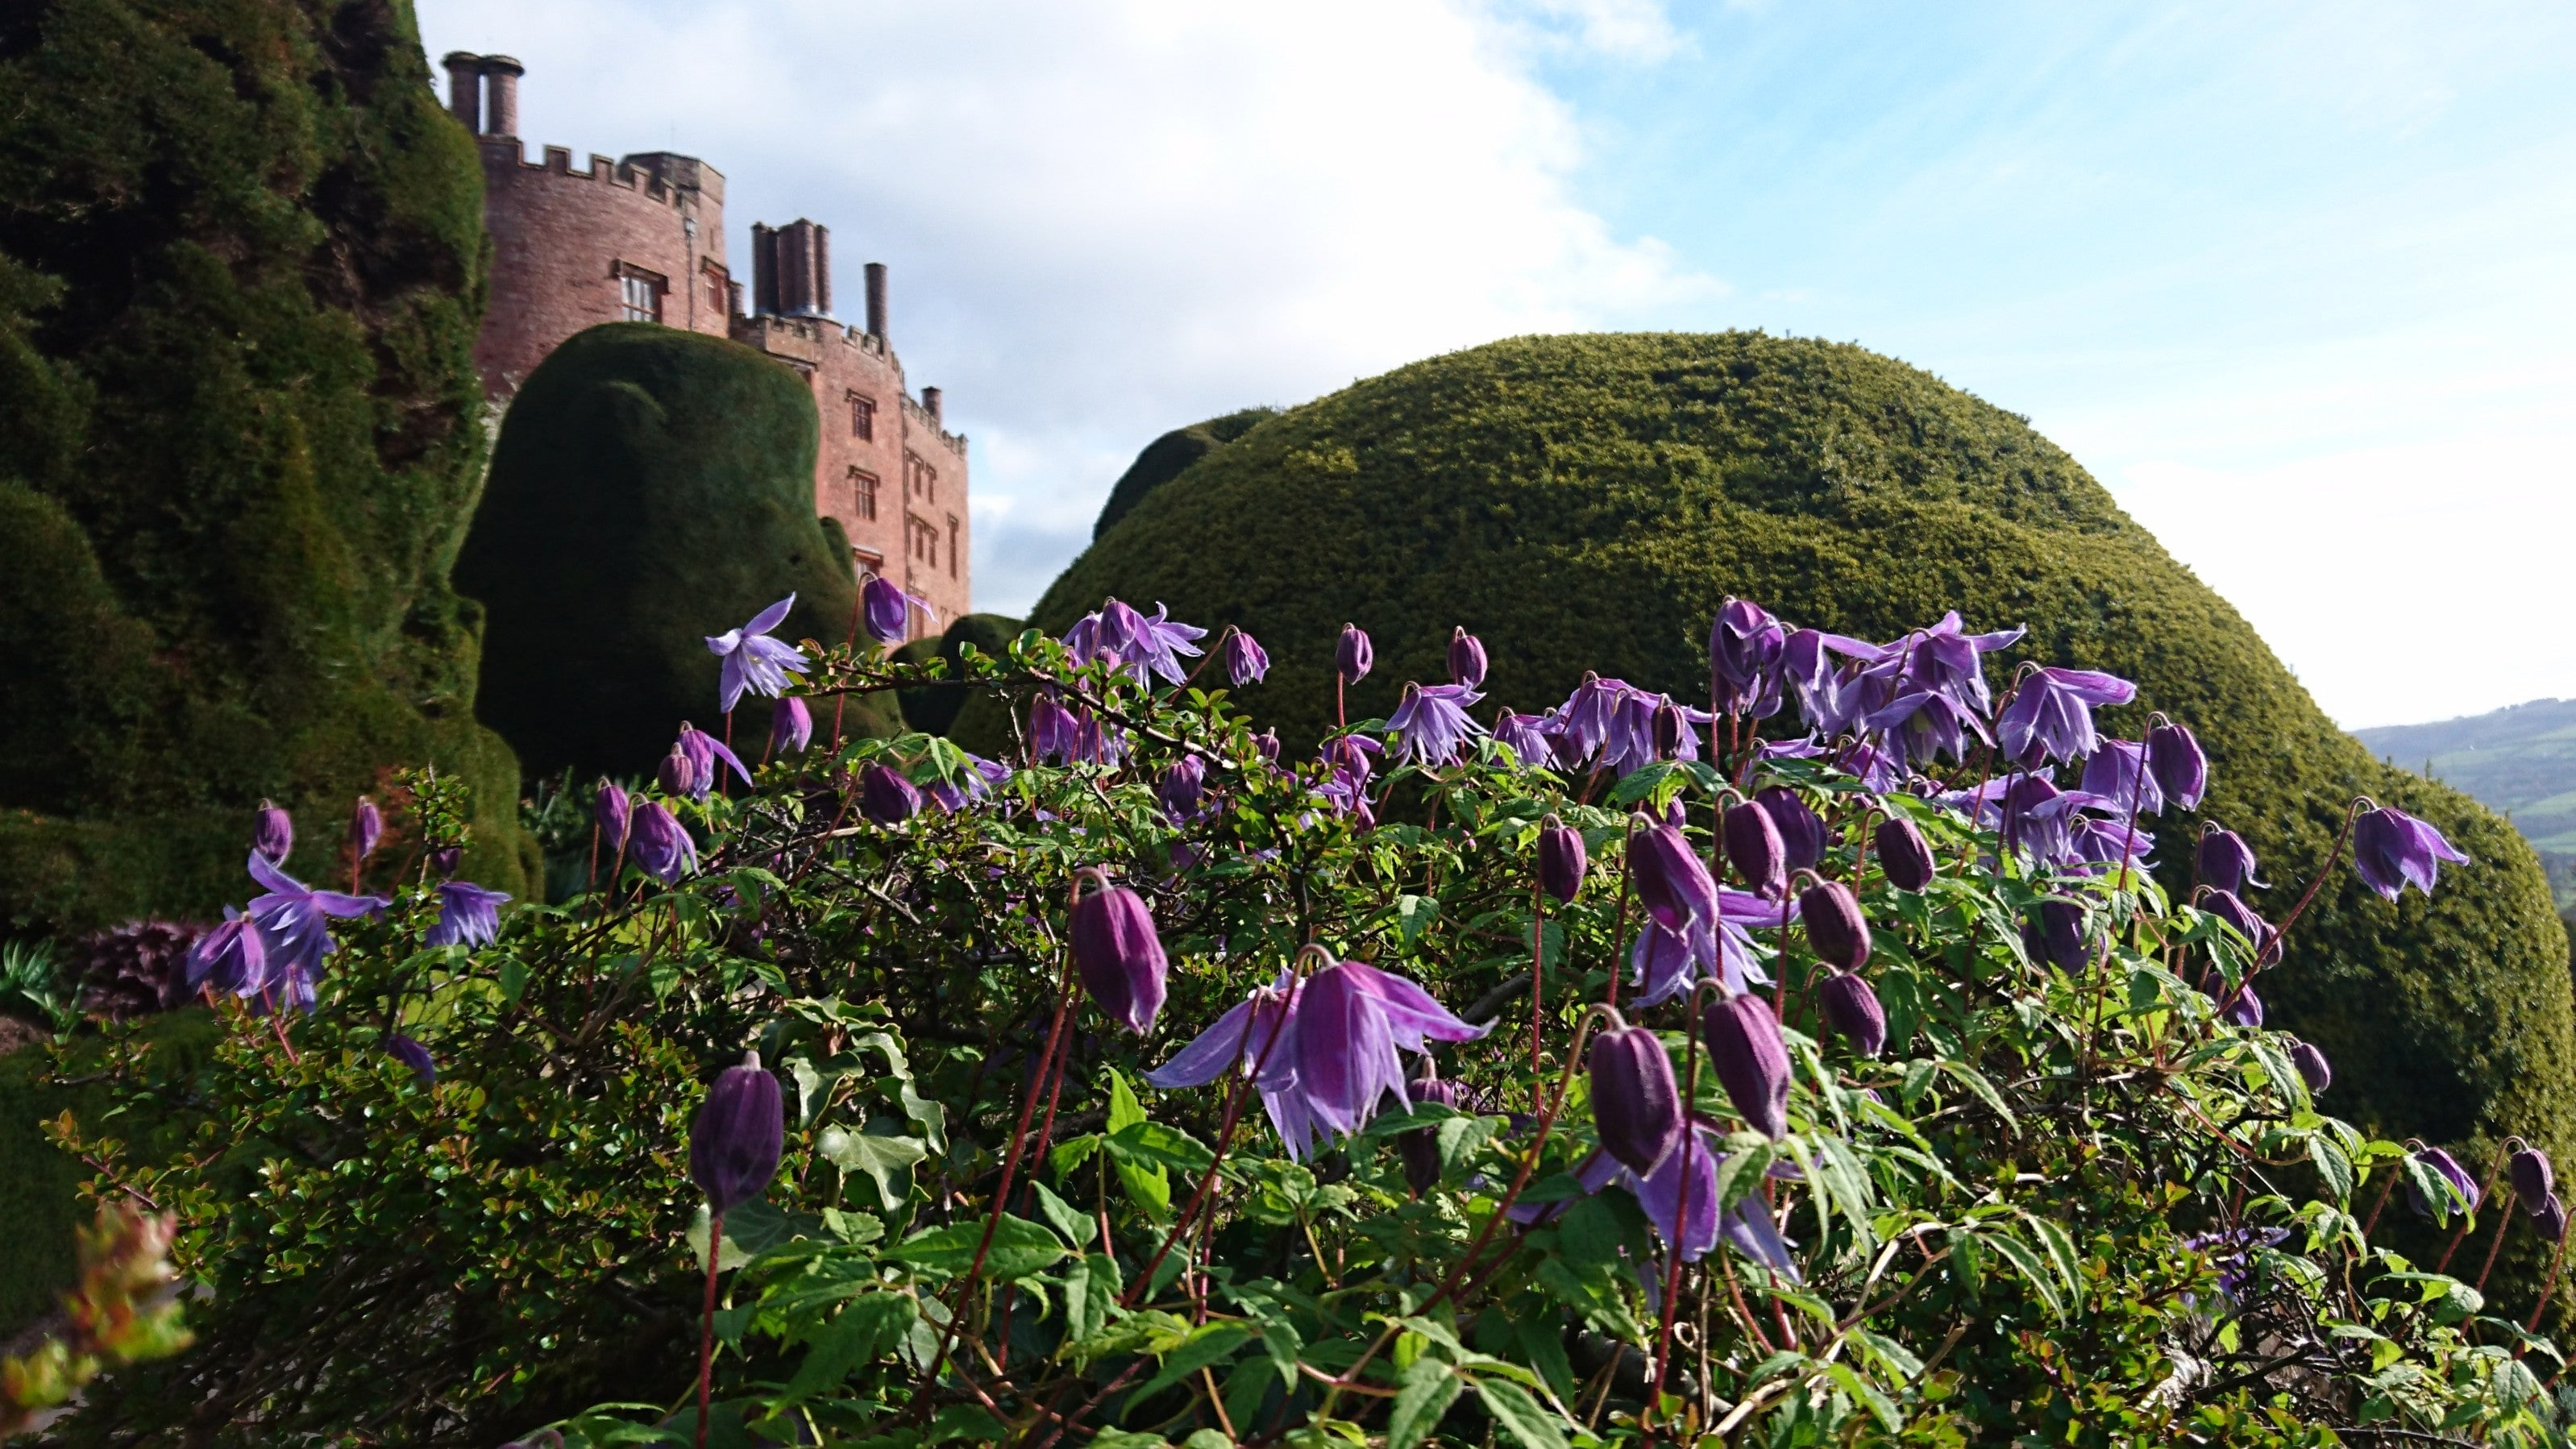 A Clematis macropetala flowering in front of the castle and yew hedges at National Trust's  Powis Castle and Garden, Powys, Wales.